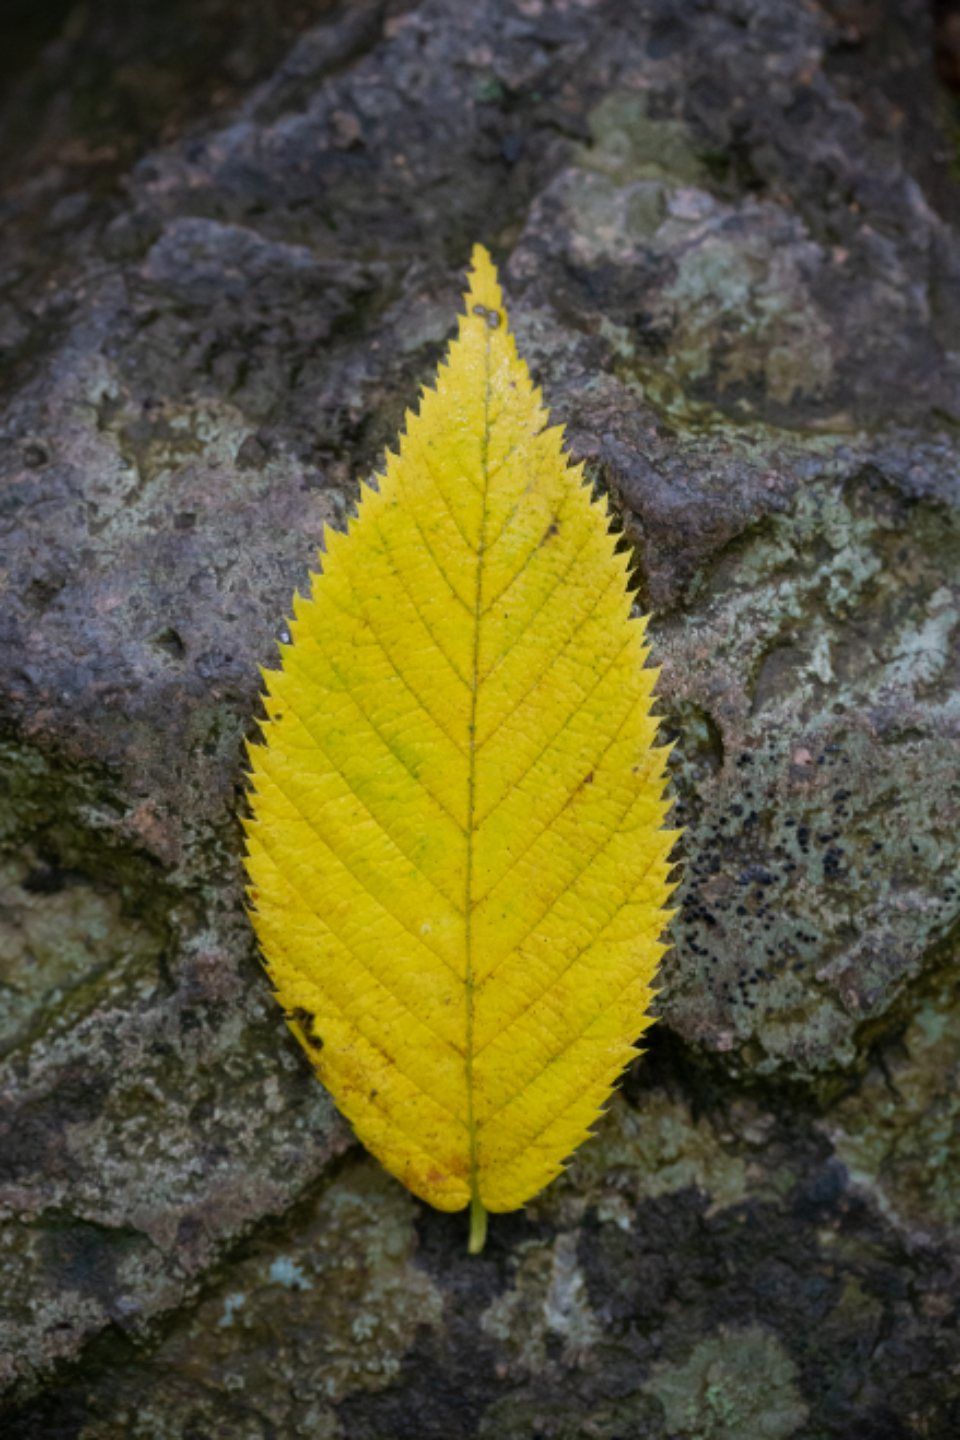 leaf top closeup natural nature plant background outdoors rock autumn fall stone foliage mobile wallpaper